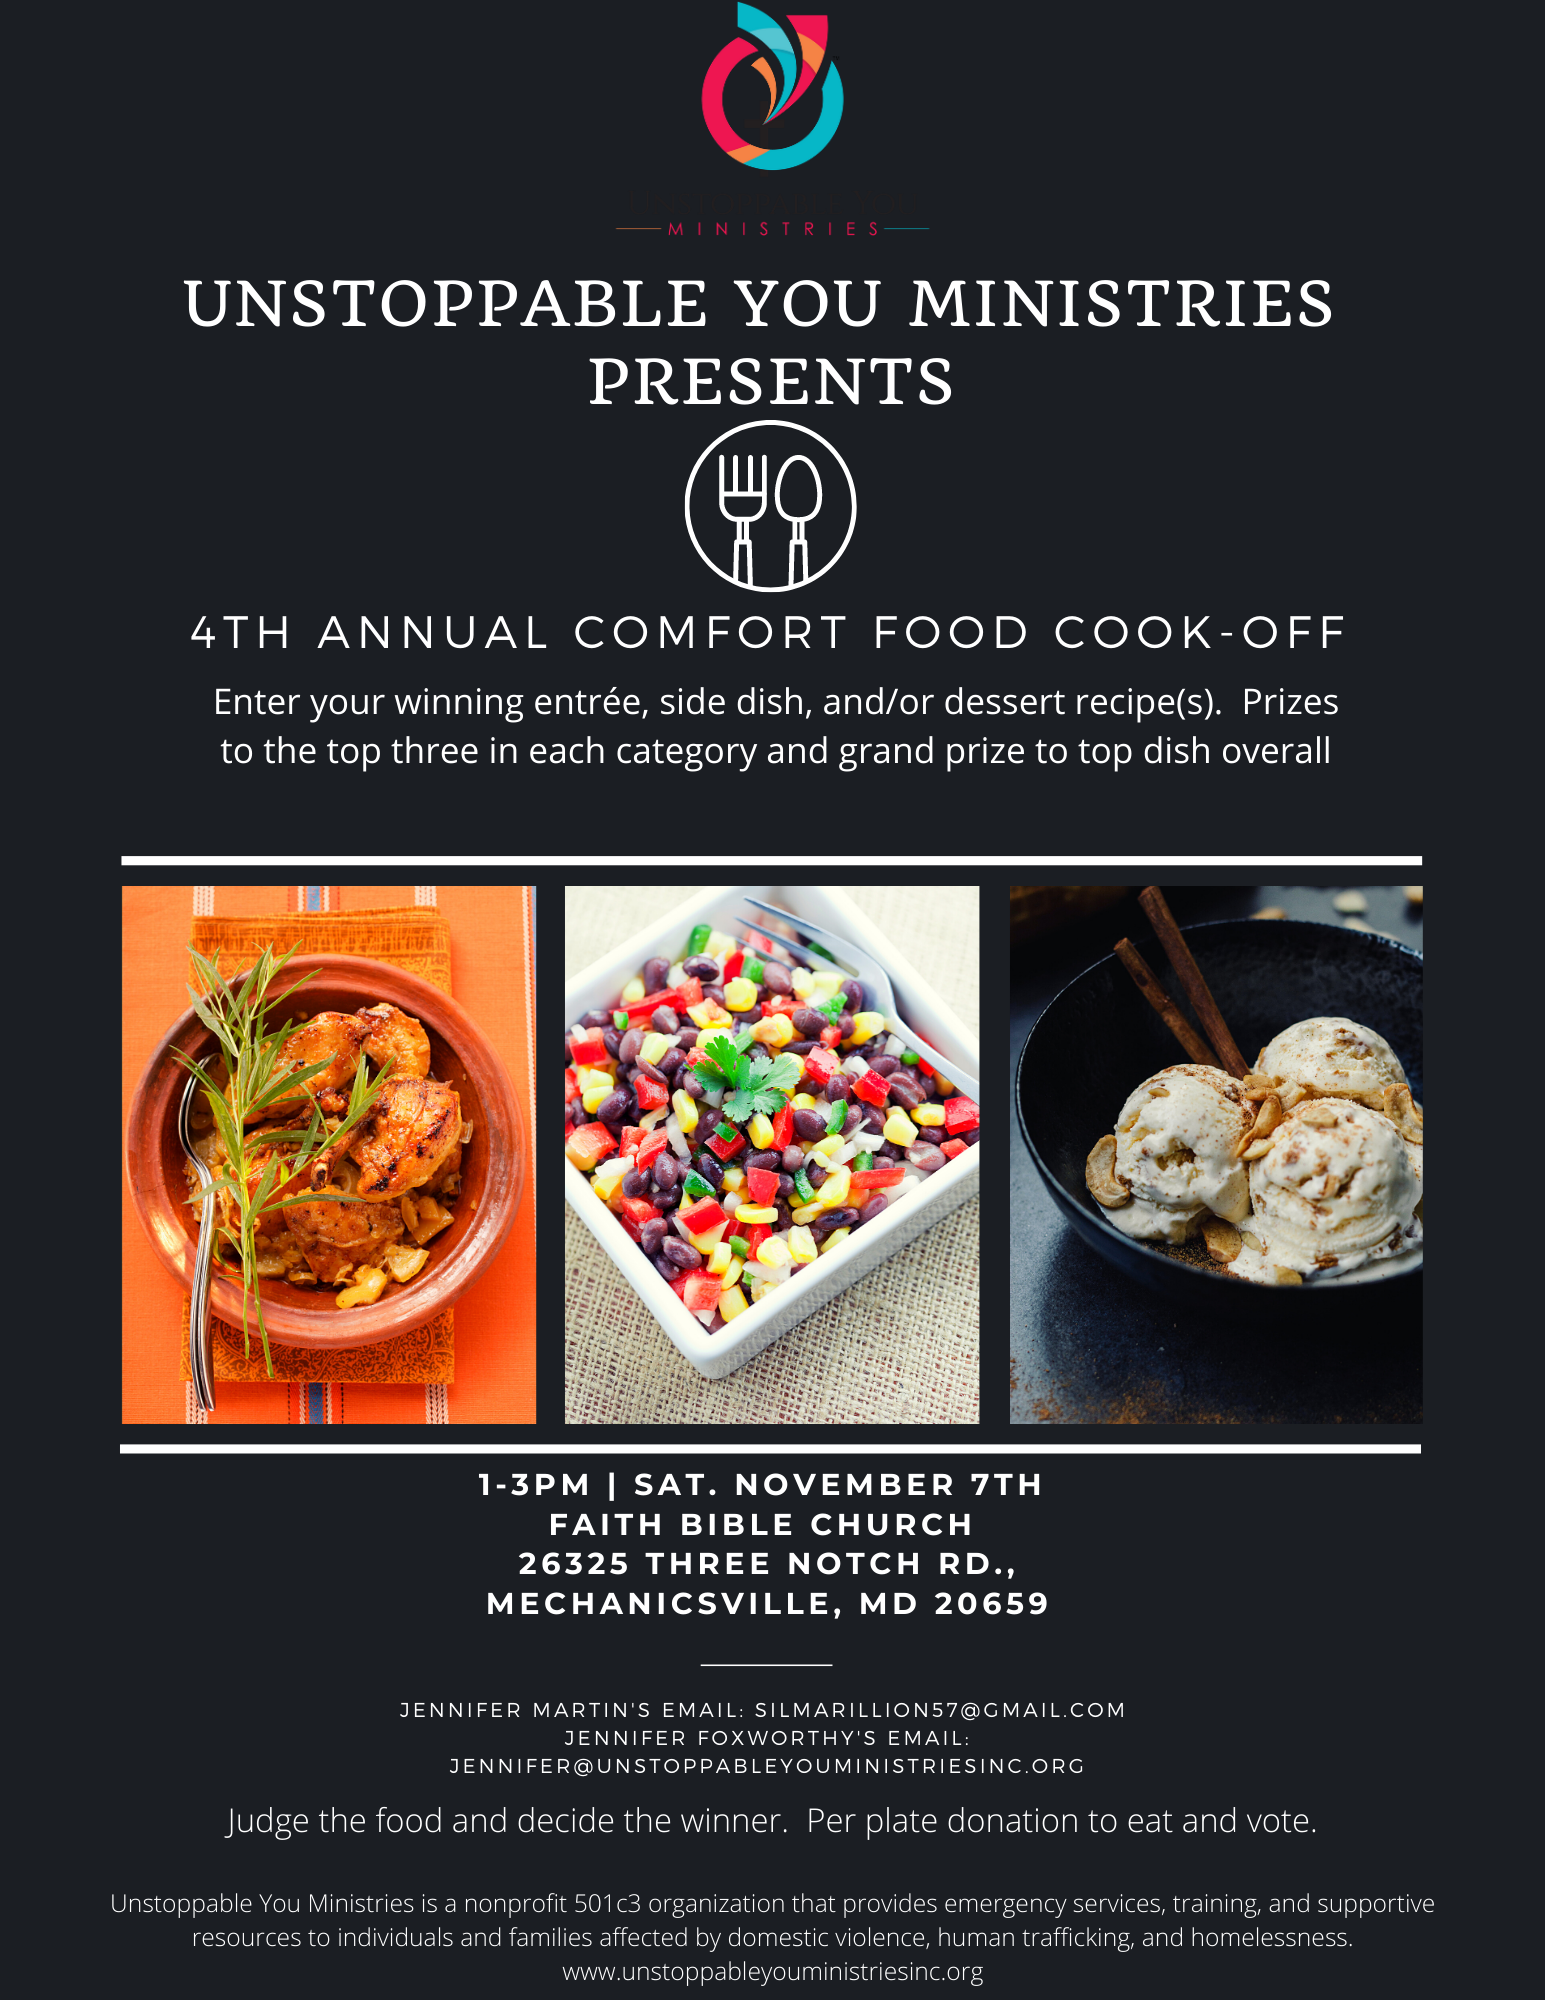 4th Annual Comfort Food Cookoff Fundraiser